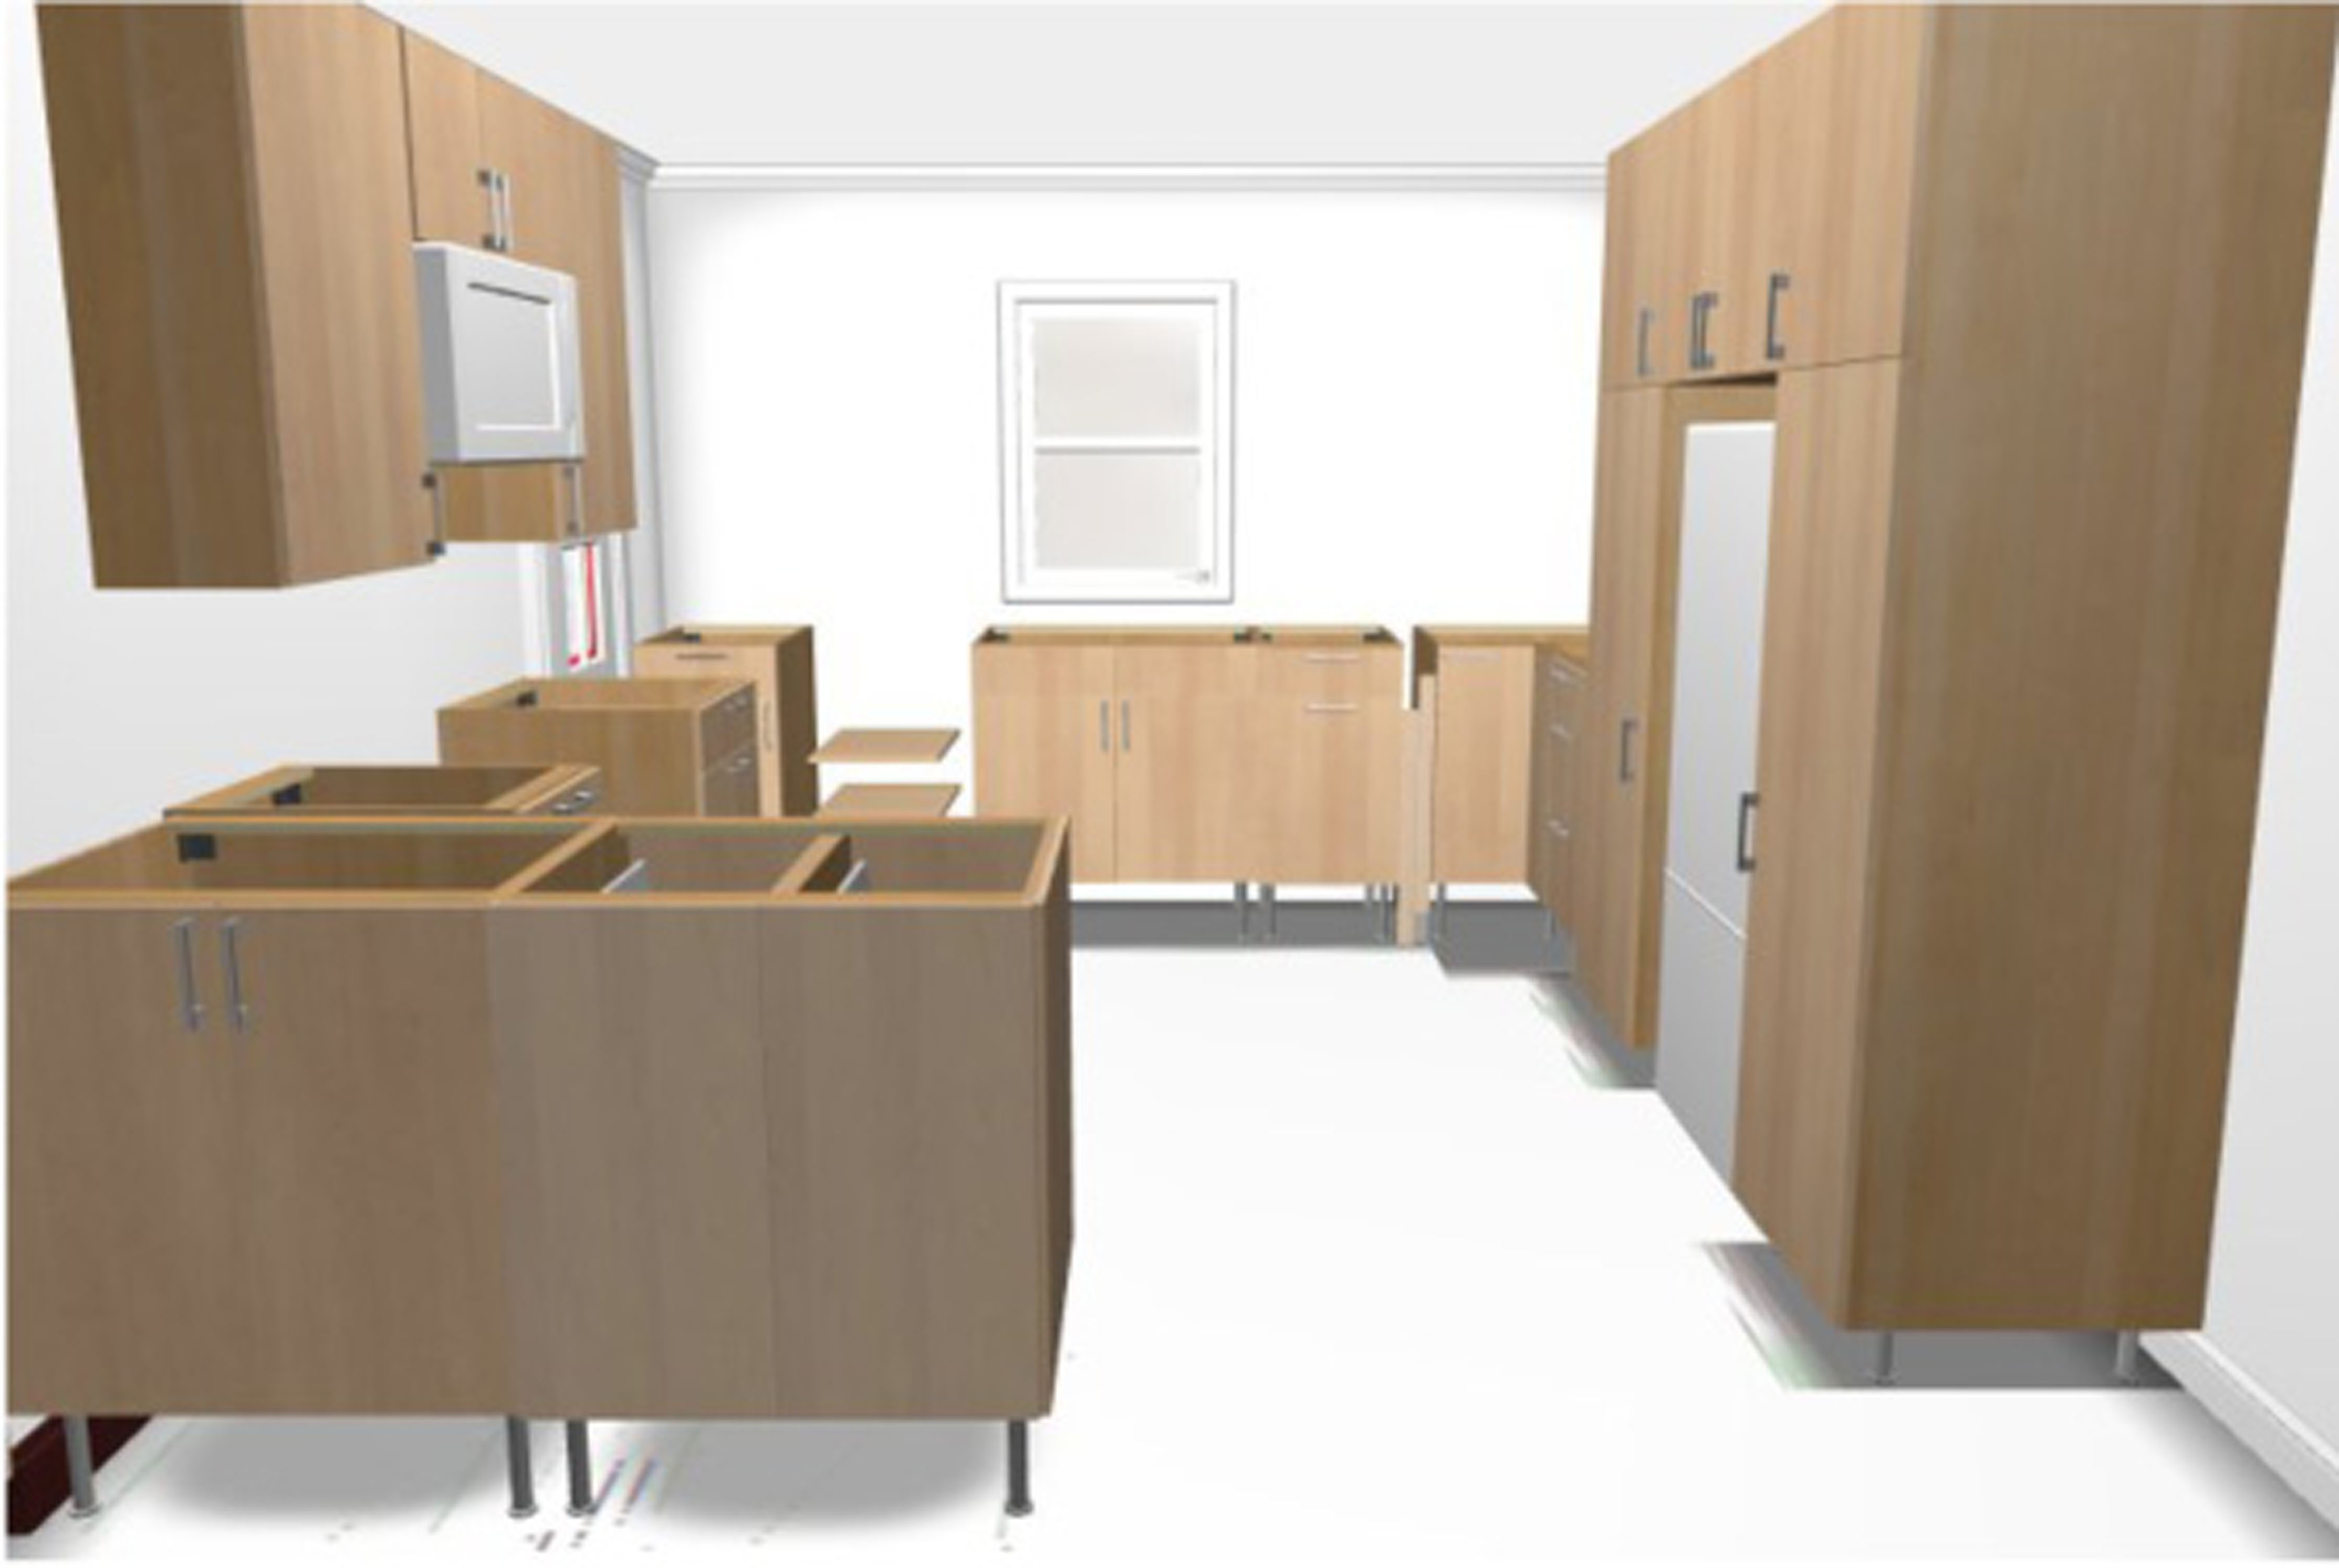 ikea 3d kitchen planner mystical designs and tags On ikea 3d kuchenplaner